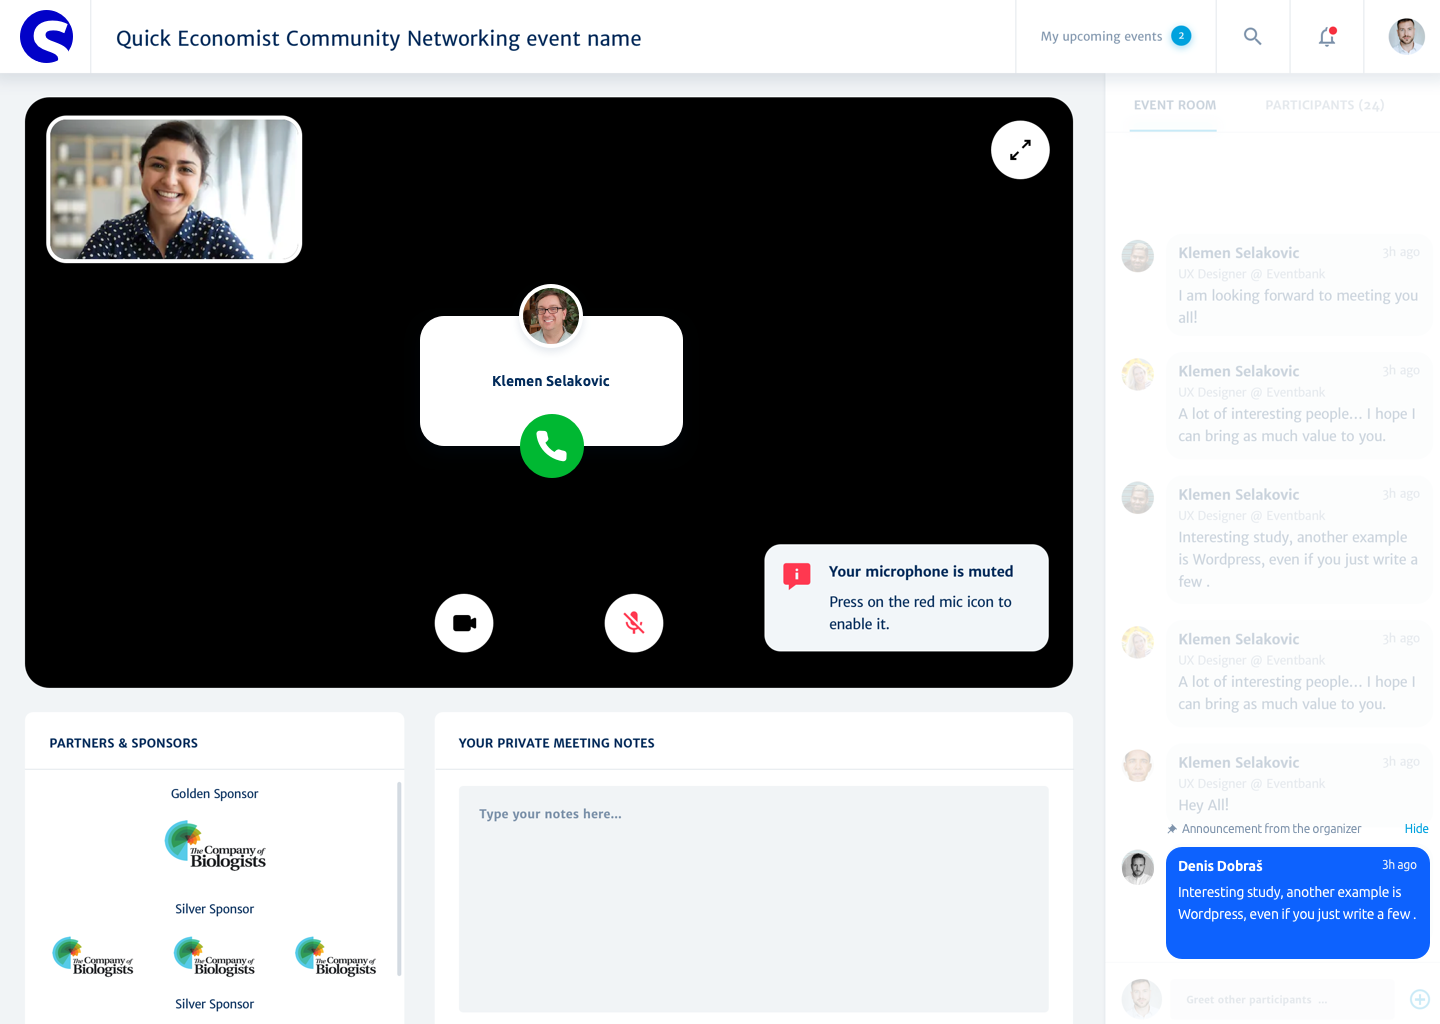 Glue Up Software - Make valuable connections via Speed Networking even during COVID pandemic.